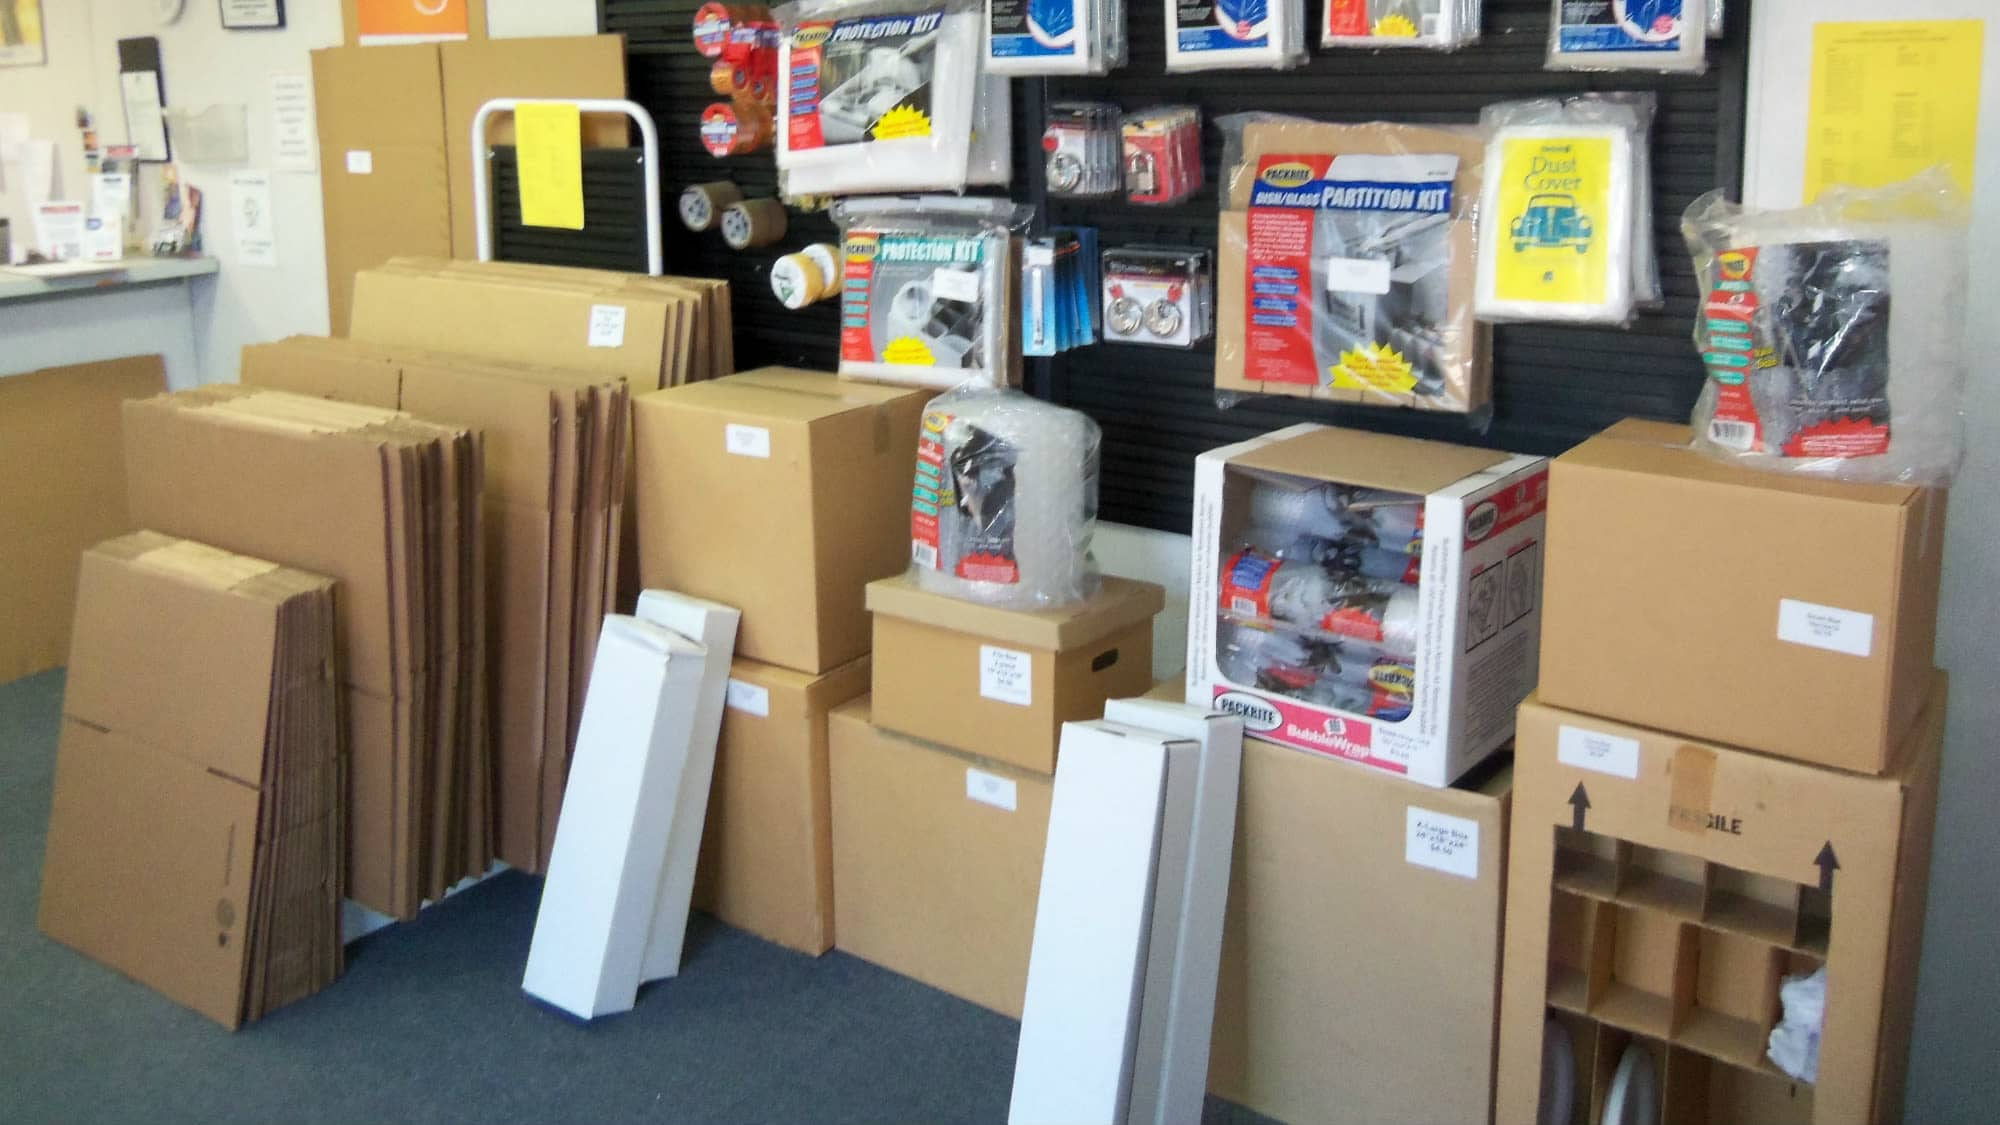 Packing and moving supplies at Gude Self Storage in Rockville, Maryland